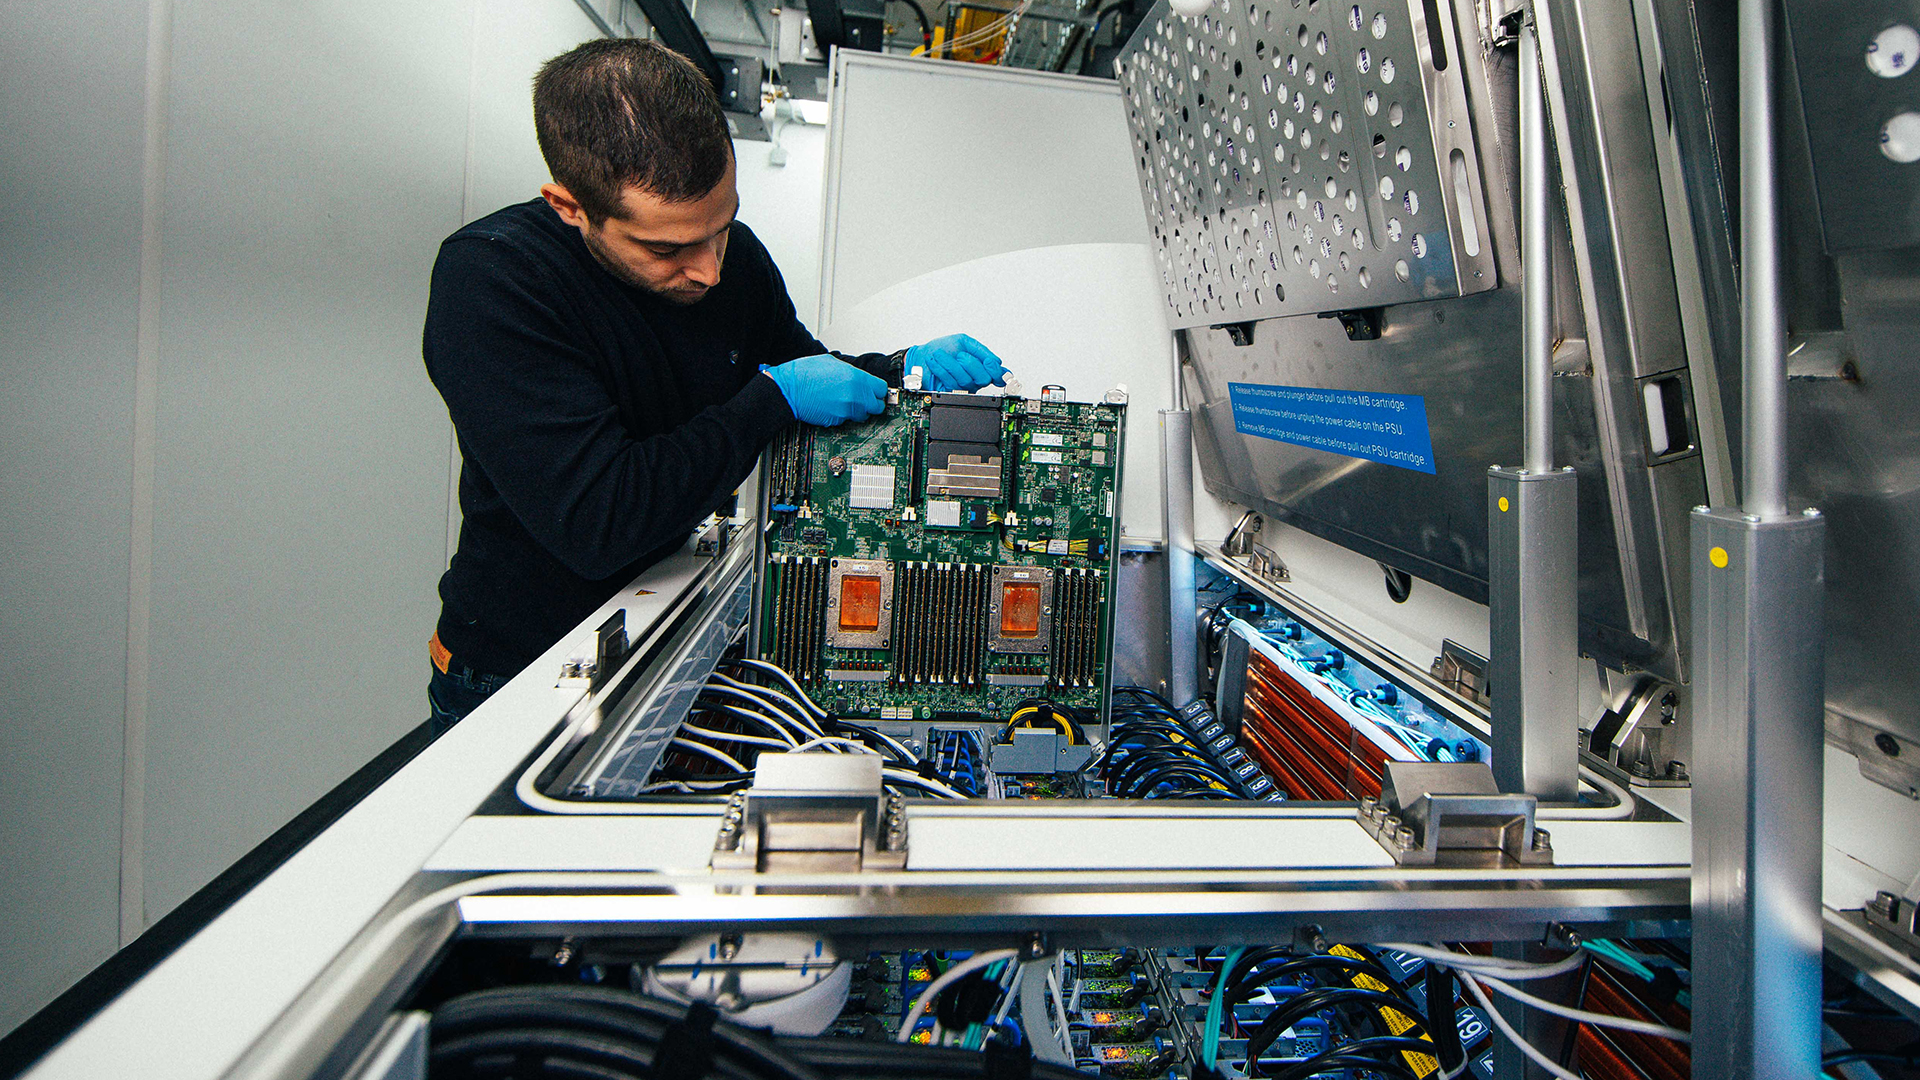 Ioannis Manousakis, a principal software engineer with Azure, removes a server blade from a two-phase immersion cooling tank at a Microsoft data center.